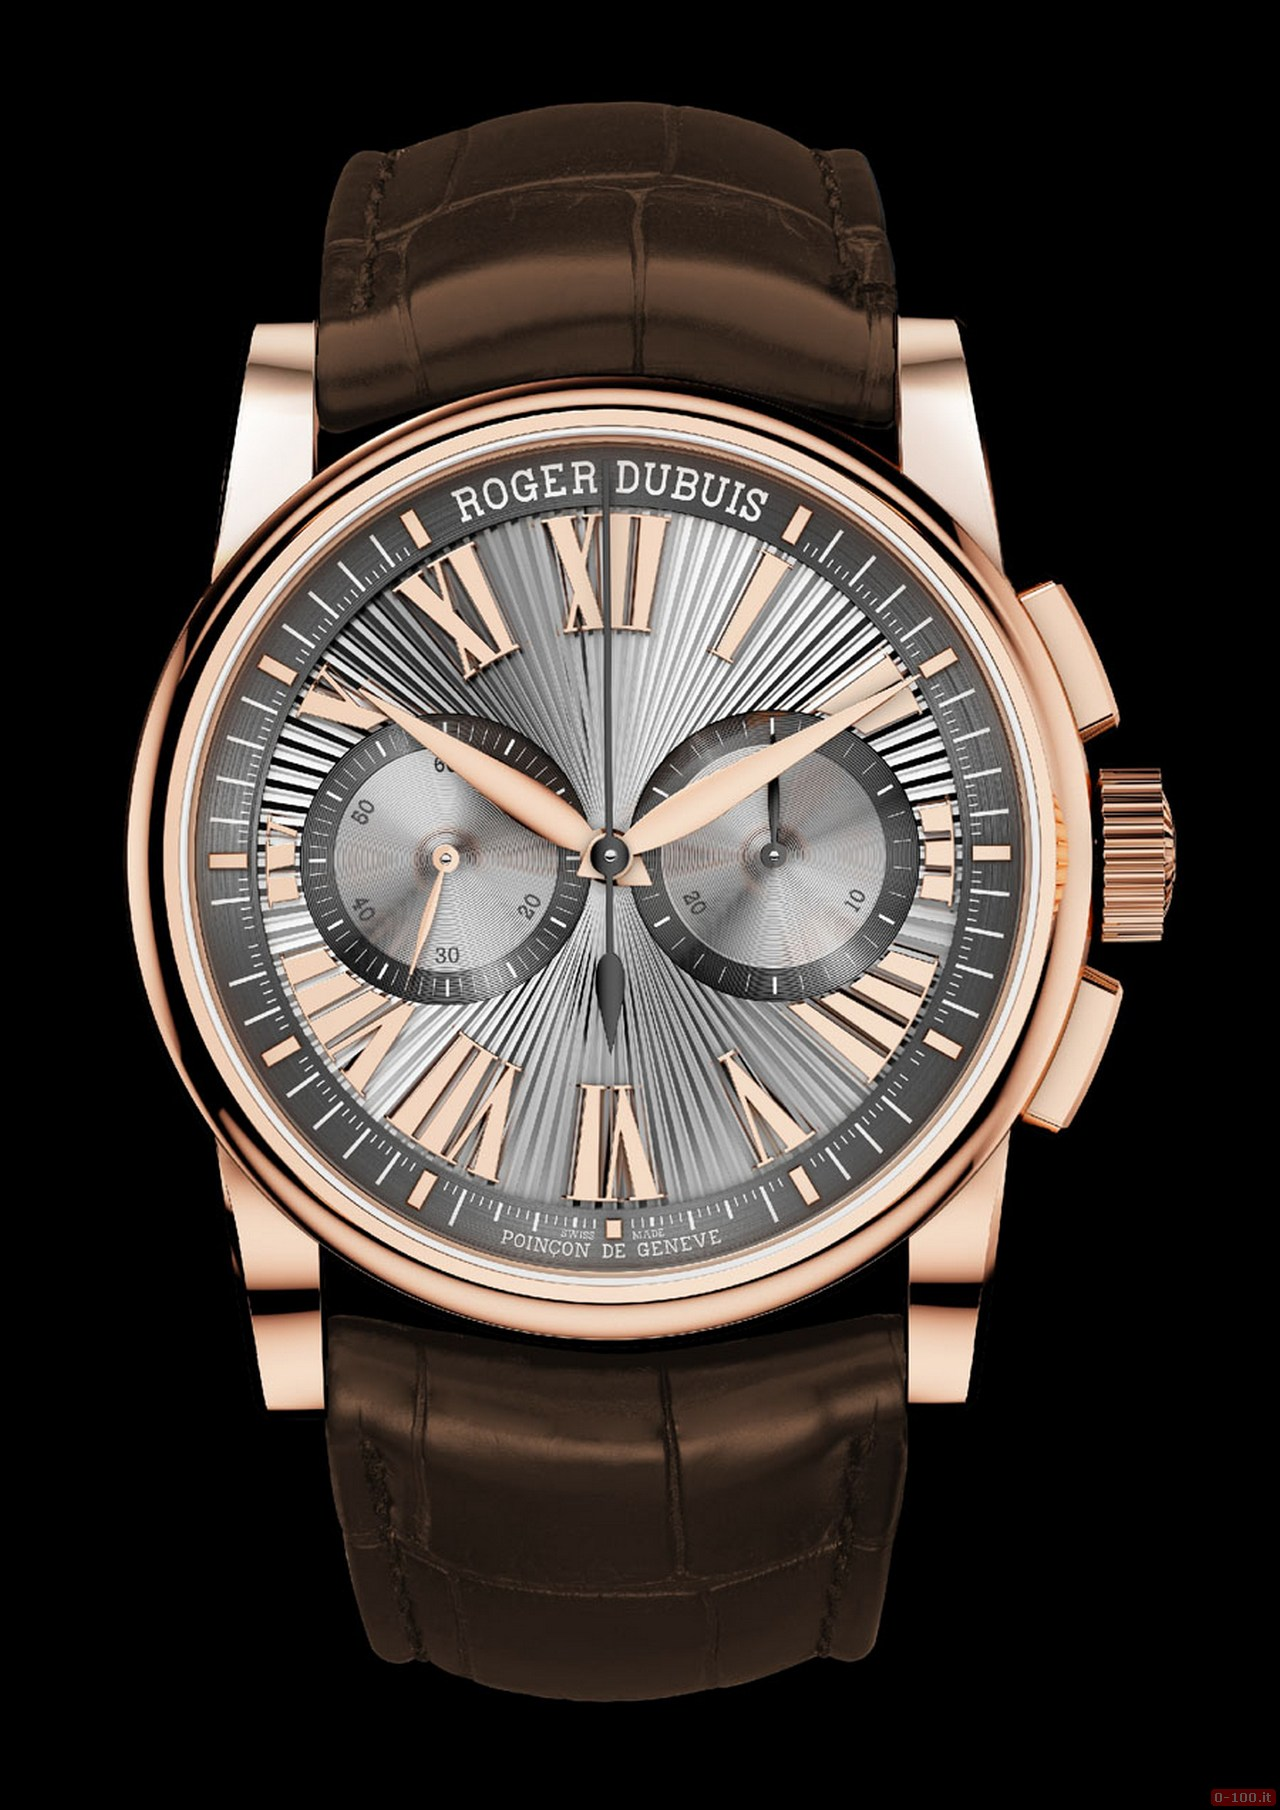 anteprima-sihh-2014-roger-dubuis-collezione-hommage-0-100_1